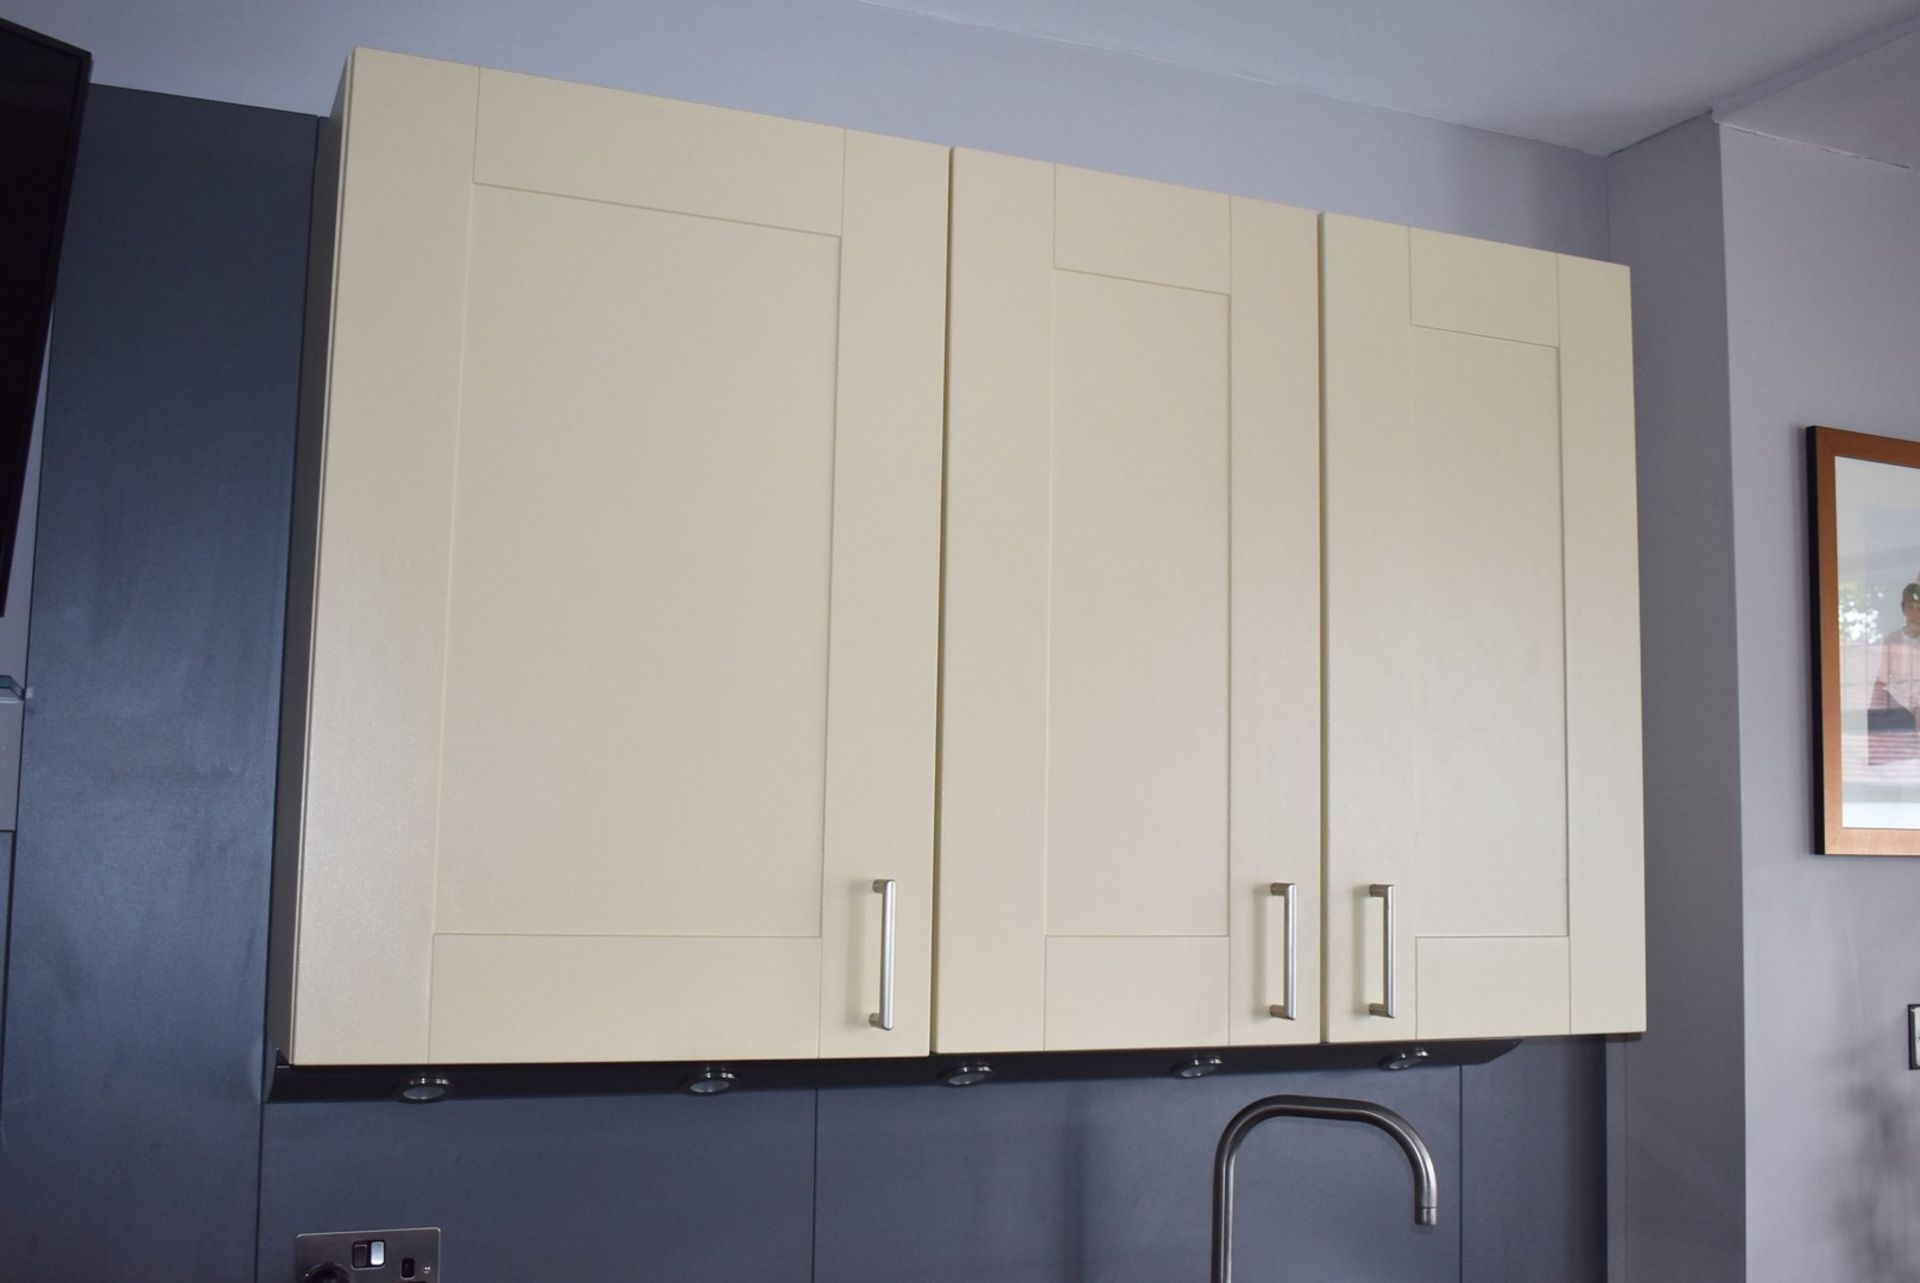 1 x SieMatic Contemporary Fitted Kitchen With Appliances - Features Shaker Style Doors, Central - Image 71 of 96